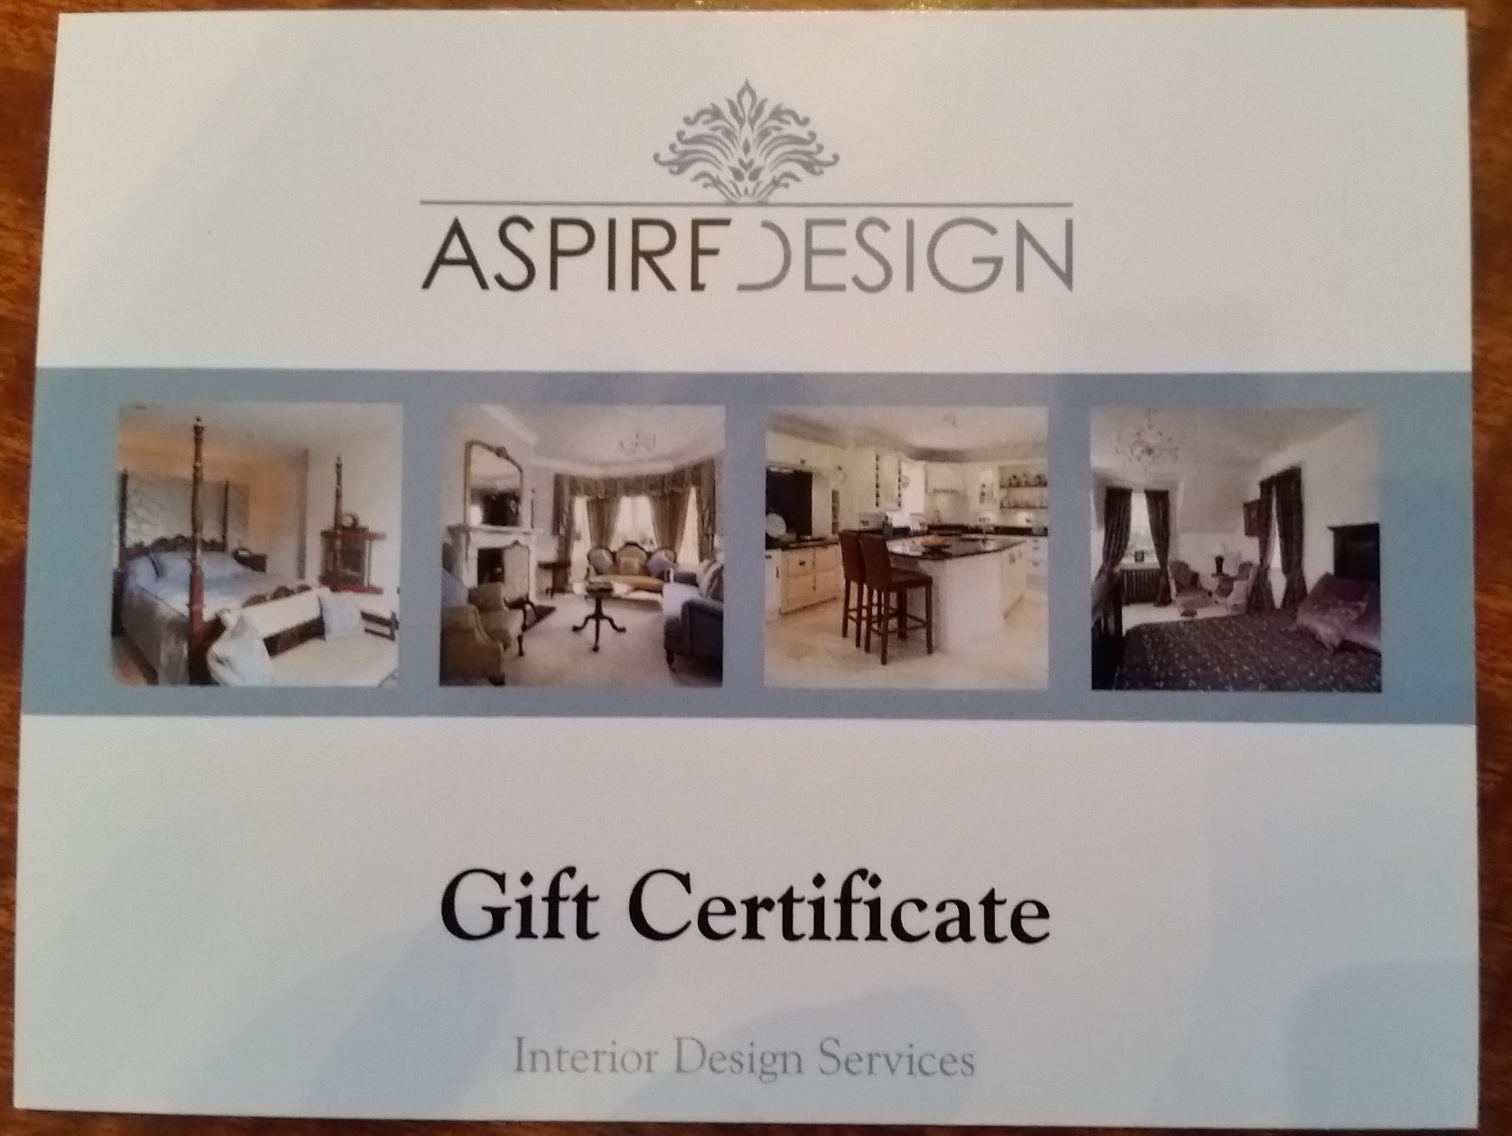 Interior design consultation in your home aspire design for Interior design gifts